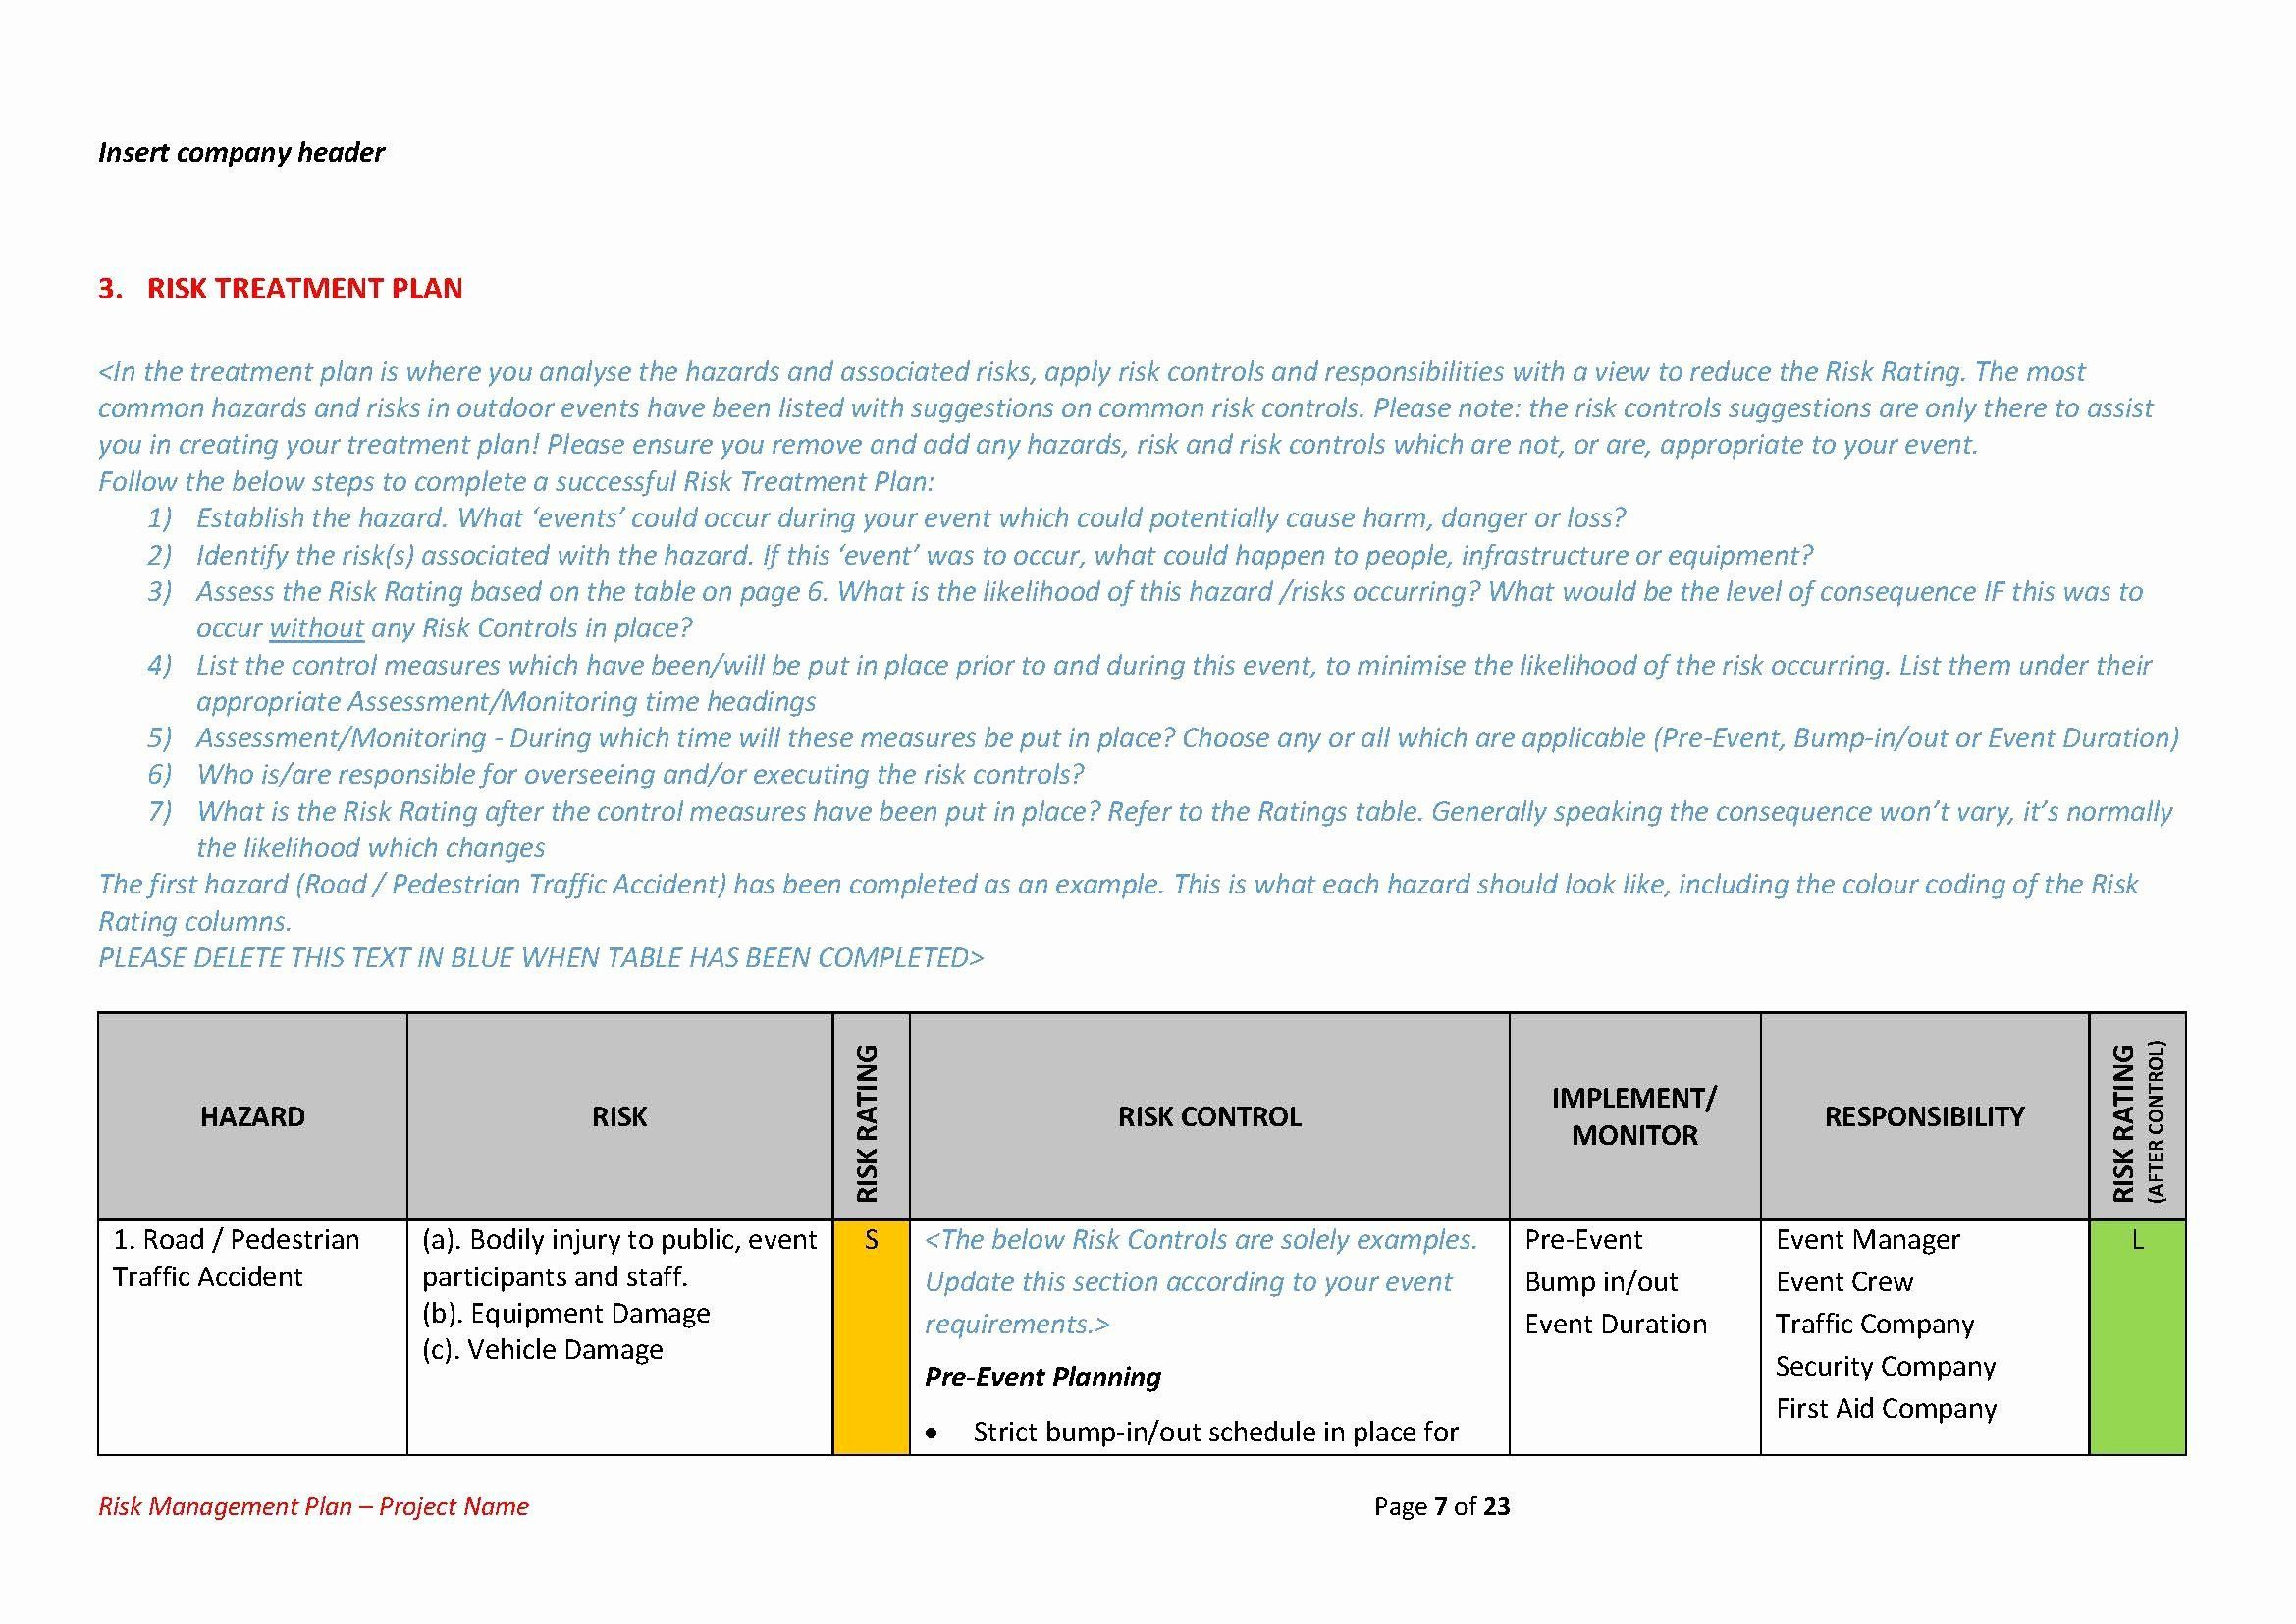 004 Surprising Project Management Plan Template Doc High Resolution  ExampleFull